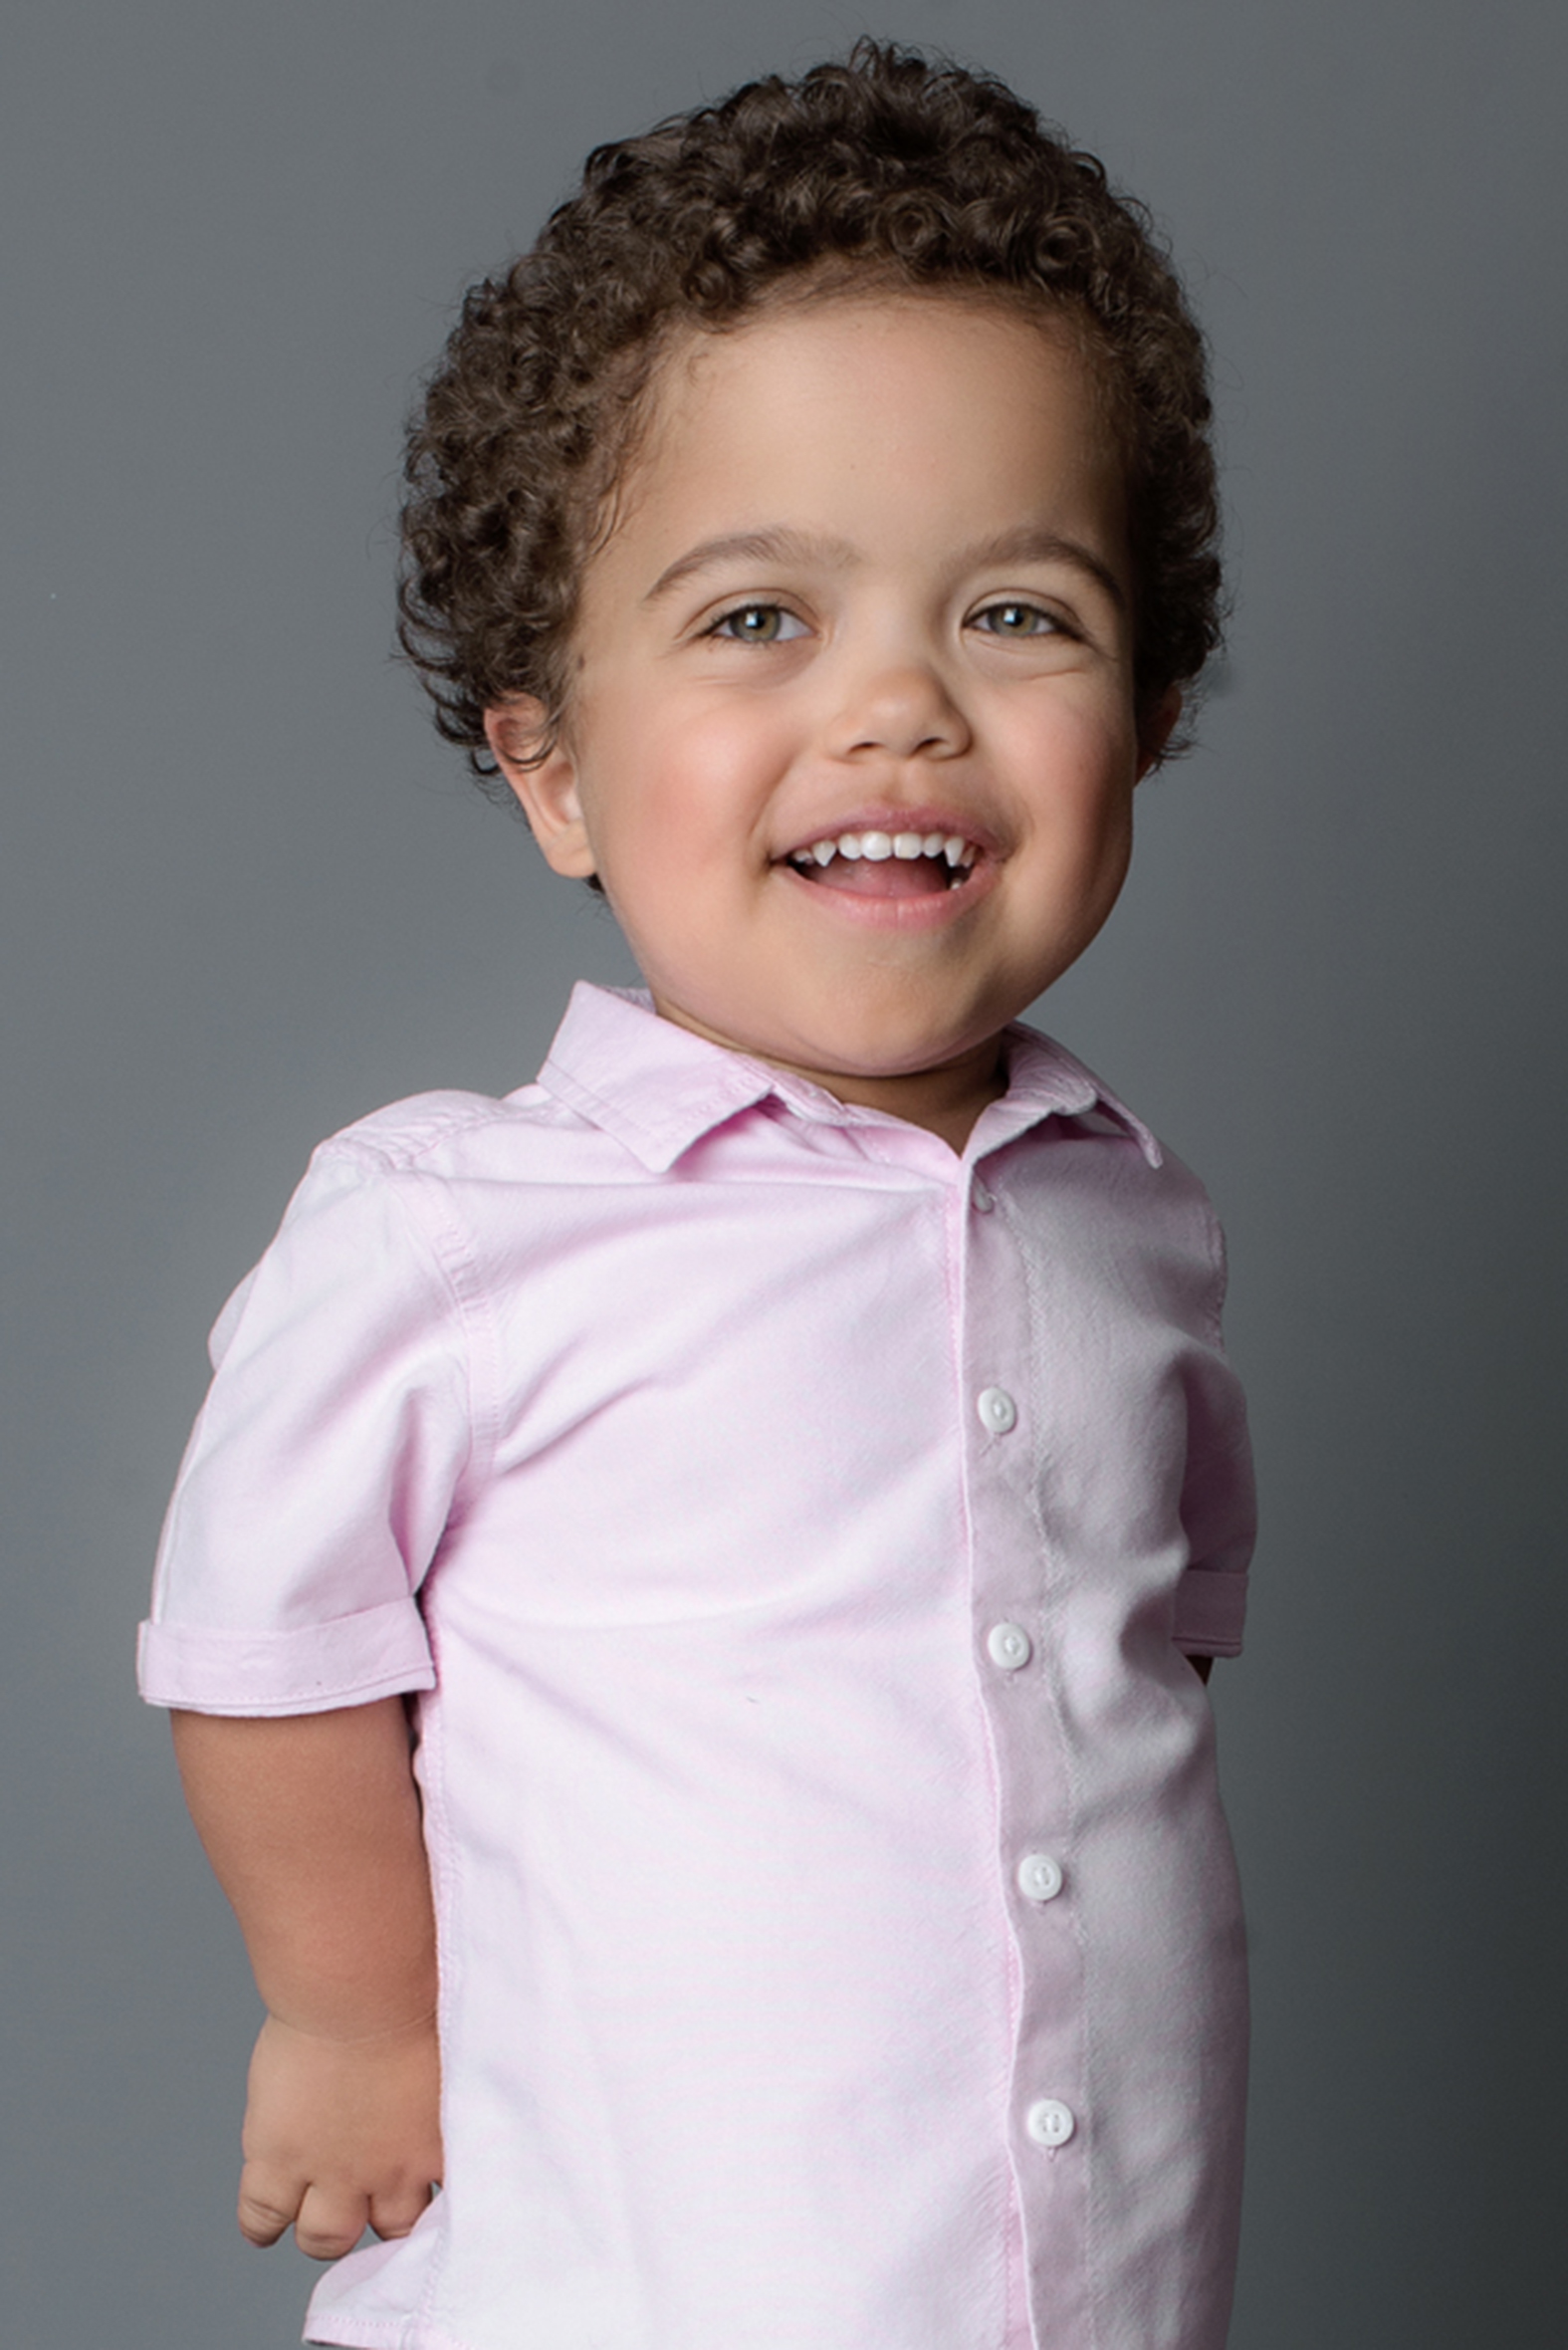 Freddie, Achindroplasia, Zebedee Management, disabled, model agency, disability, baby (2)